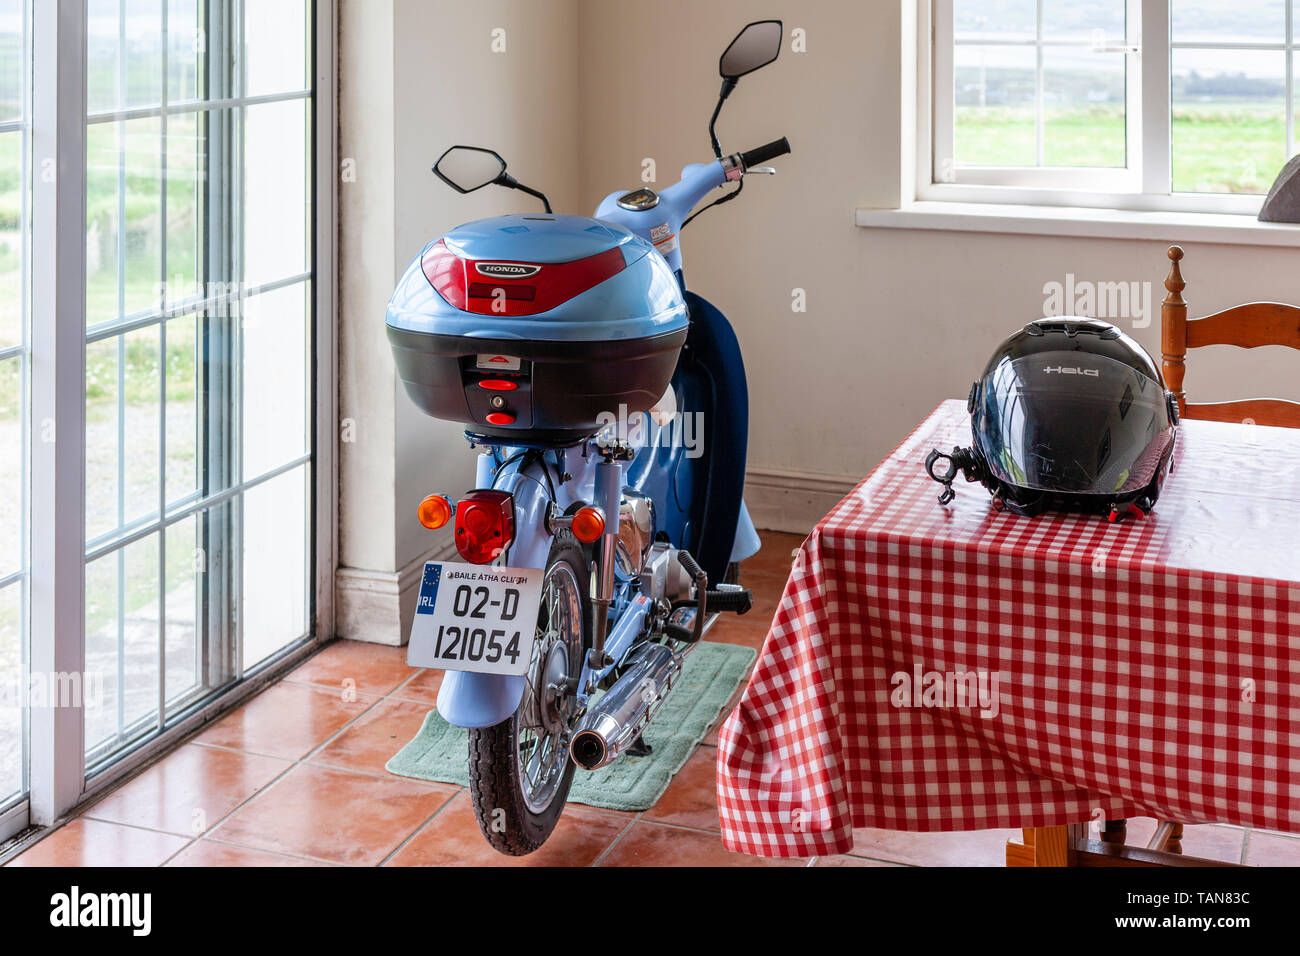 50cc Scooter Stock Photos & 50cc Scooter Stock Images - Alamy